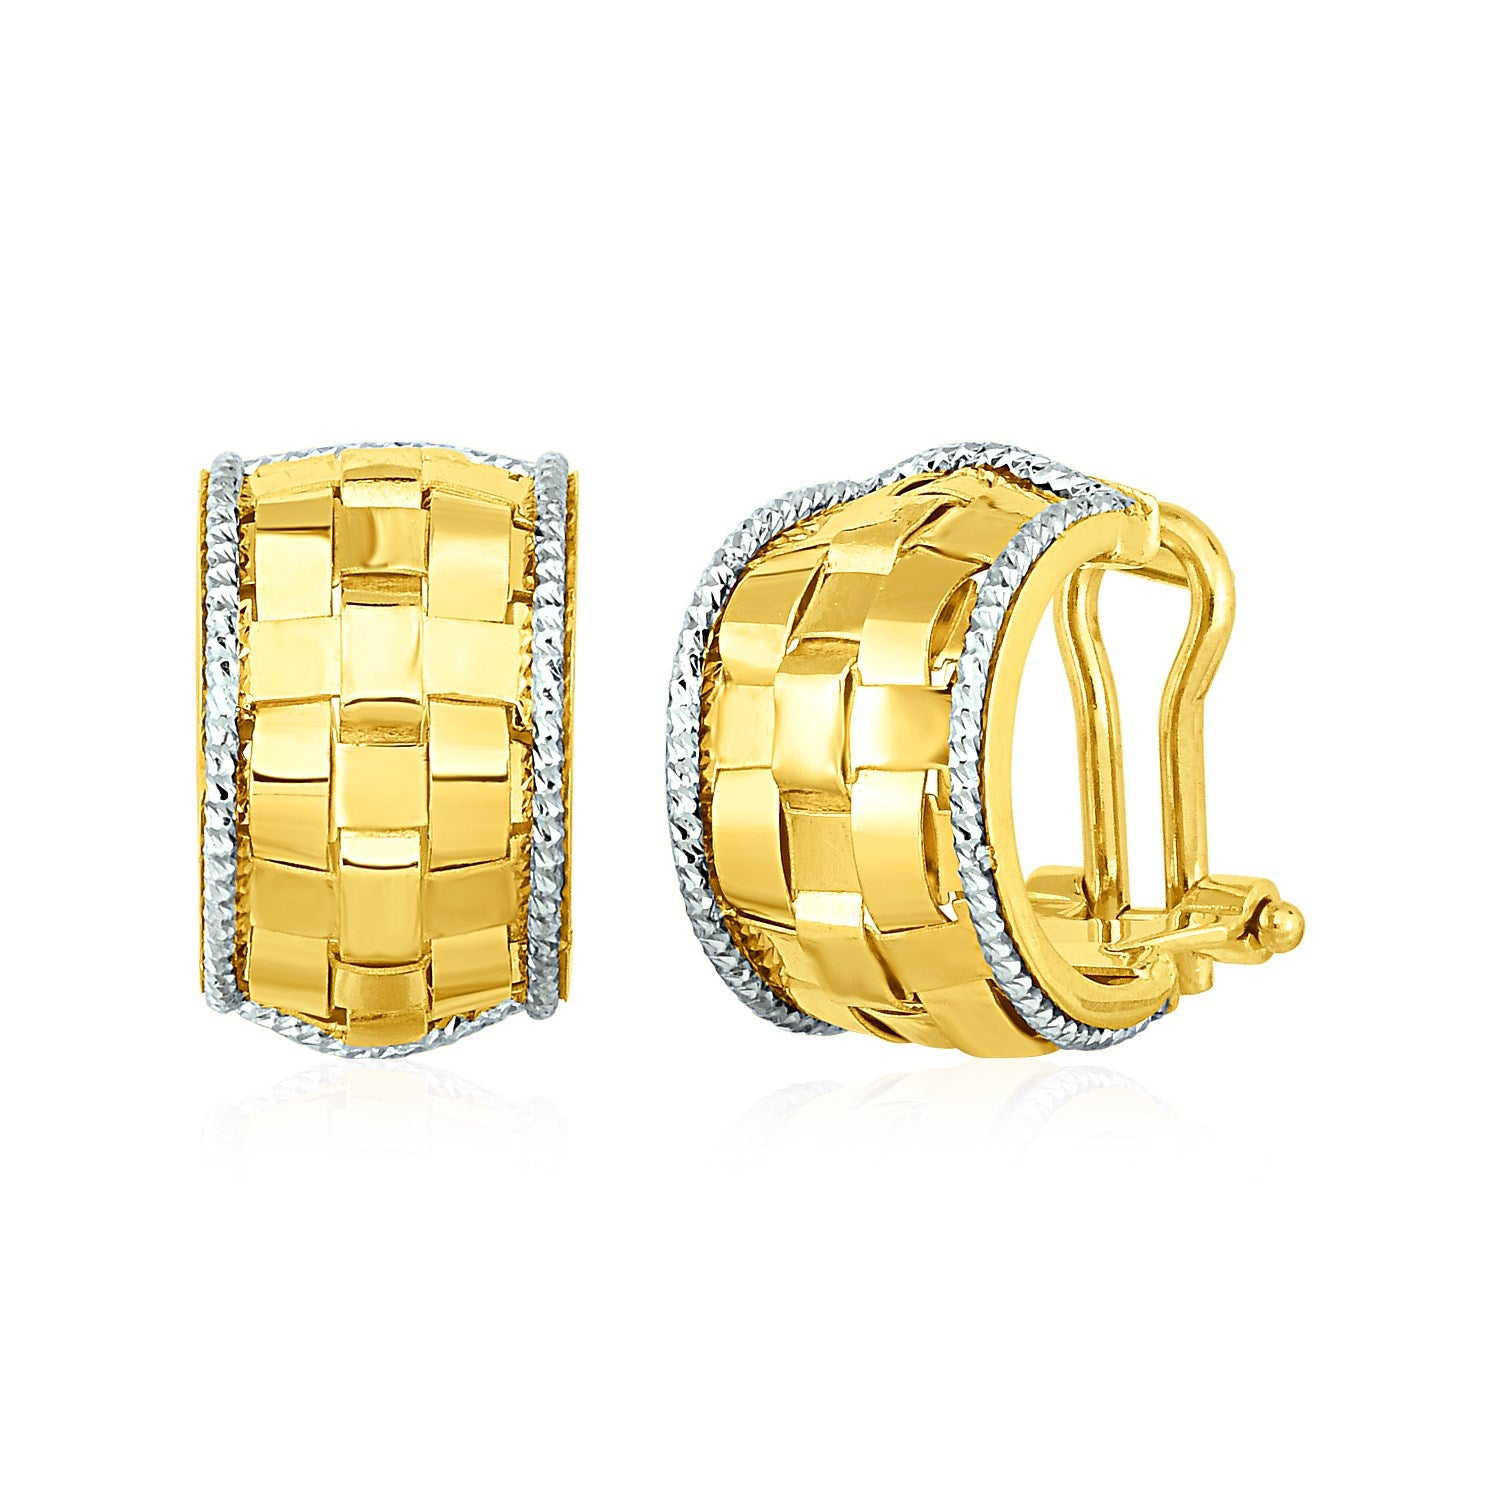 Wide Hoop Earrings with Basket Weave Texture in 14K Yellow and White Gold